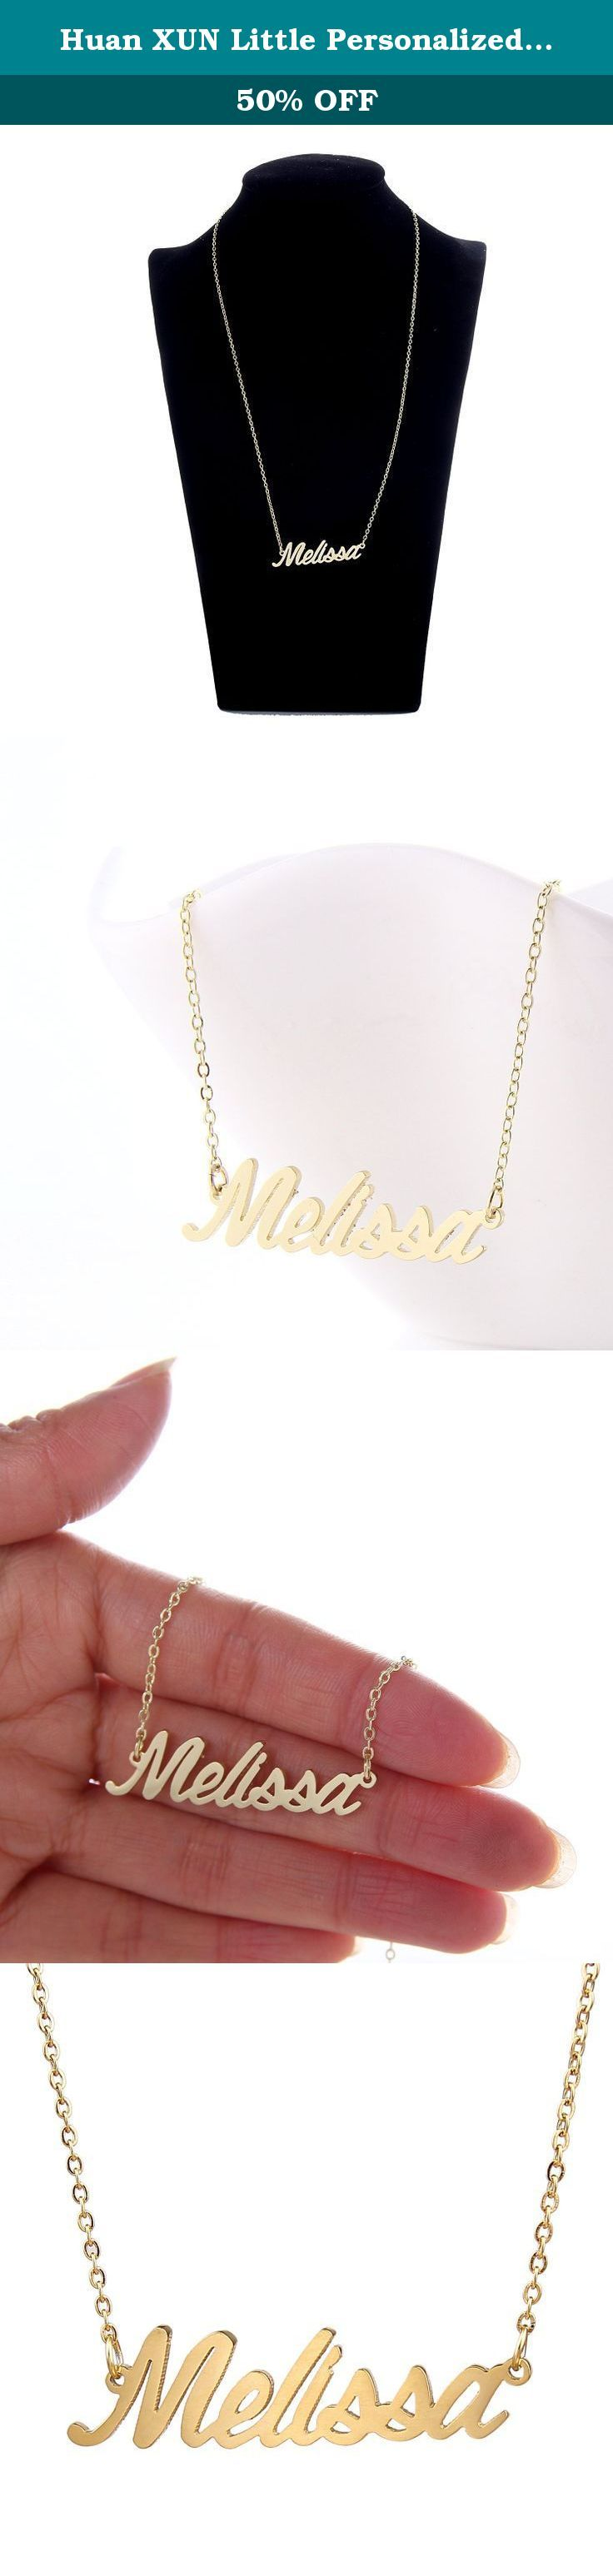 Huan XUN Little Personalized Name Necklace Melissa Mother's Day Gift. 1.Material: stainless steel, 14 K gold plated . 2.Size: chain length=40.64cm=16inches, extention chain=5.08cm=2inches. 3.Standard shipping: 10-25 business days to US, 15-35 business days to other countries. 4.Expedited Shipping: 4-7 business days to US, 5-10 business days to other countries. .